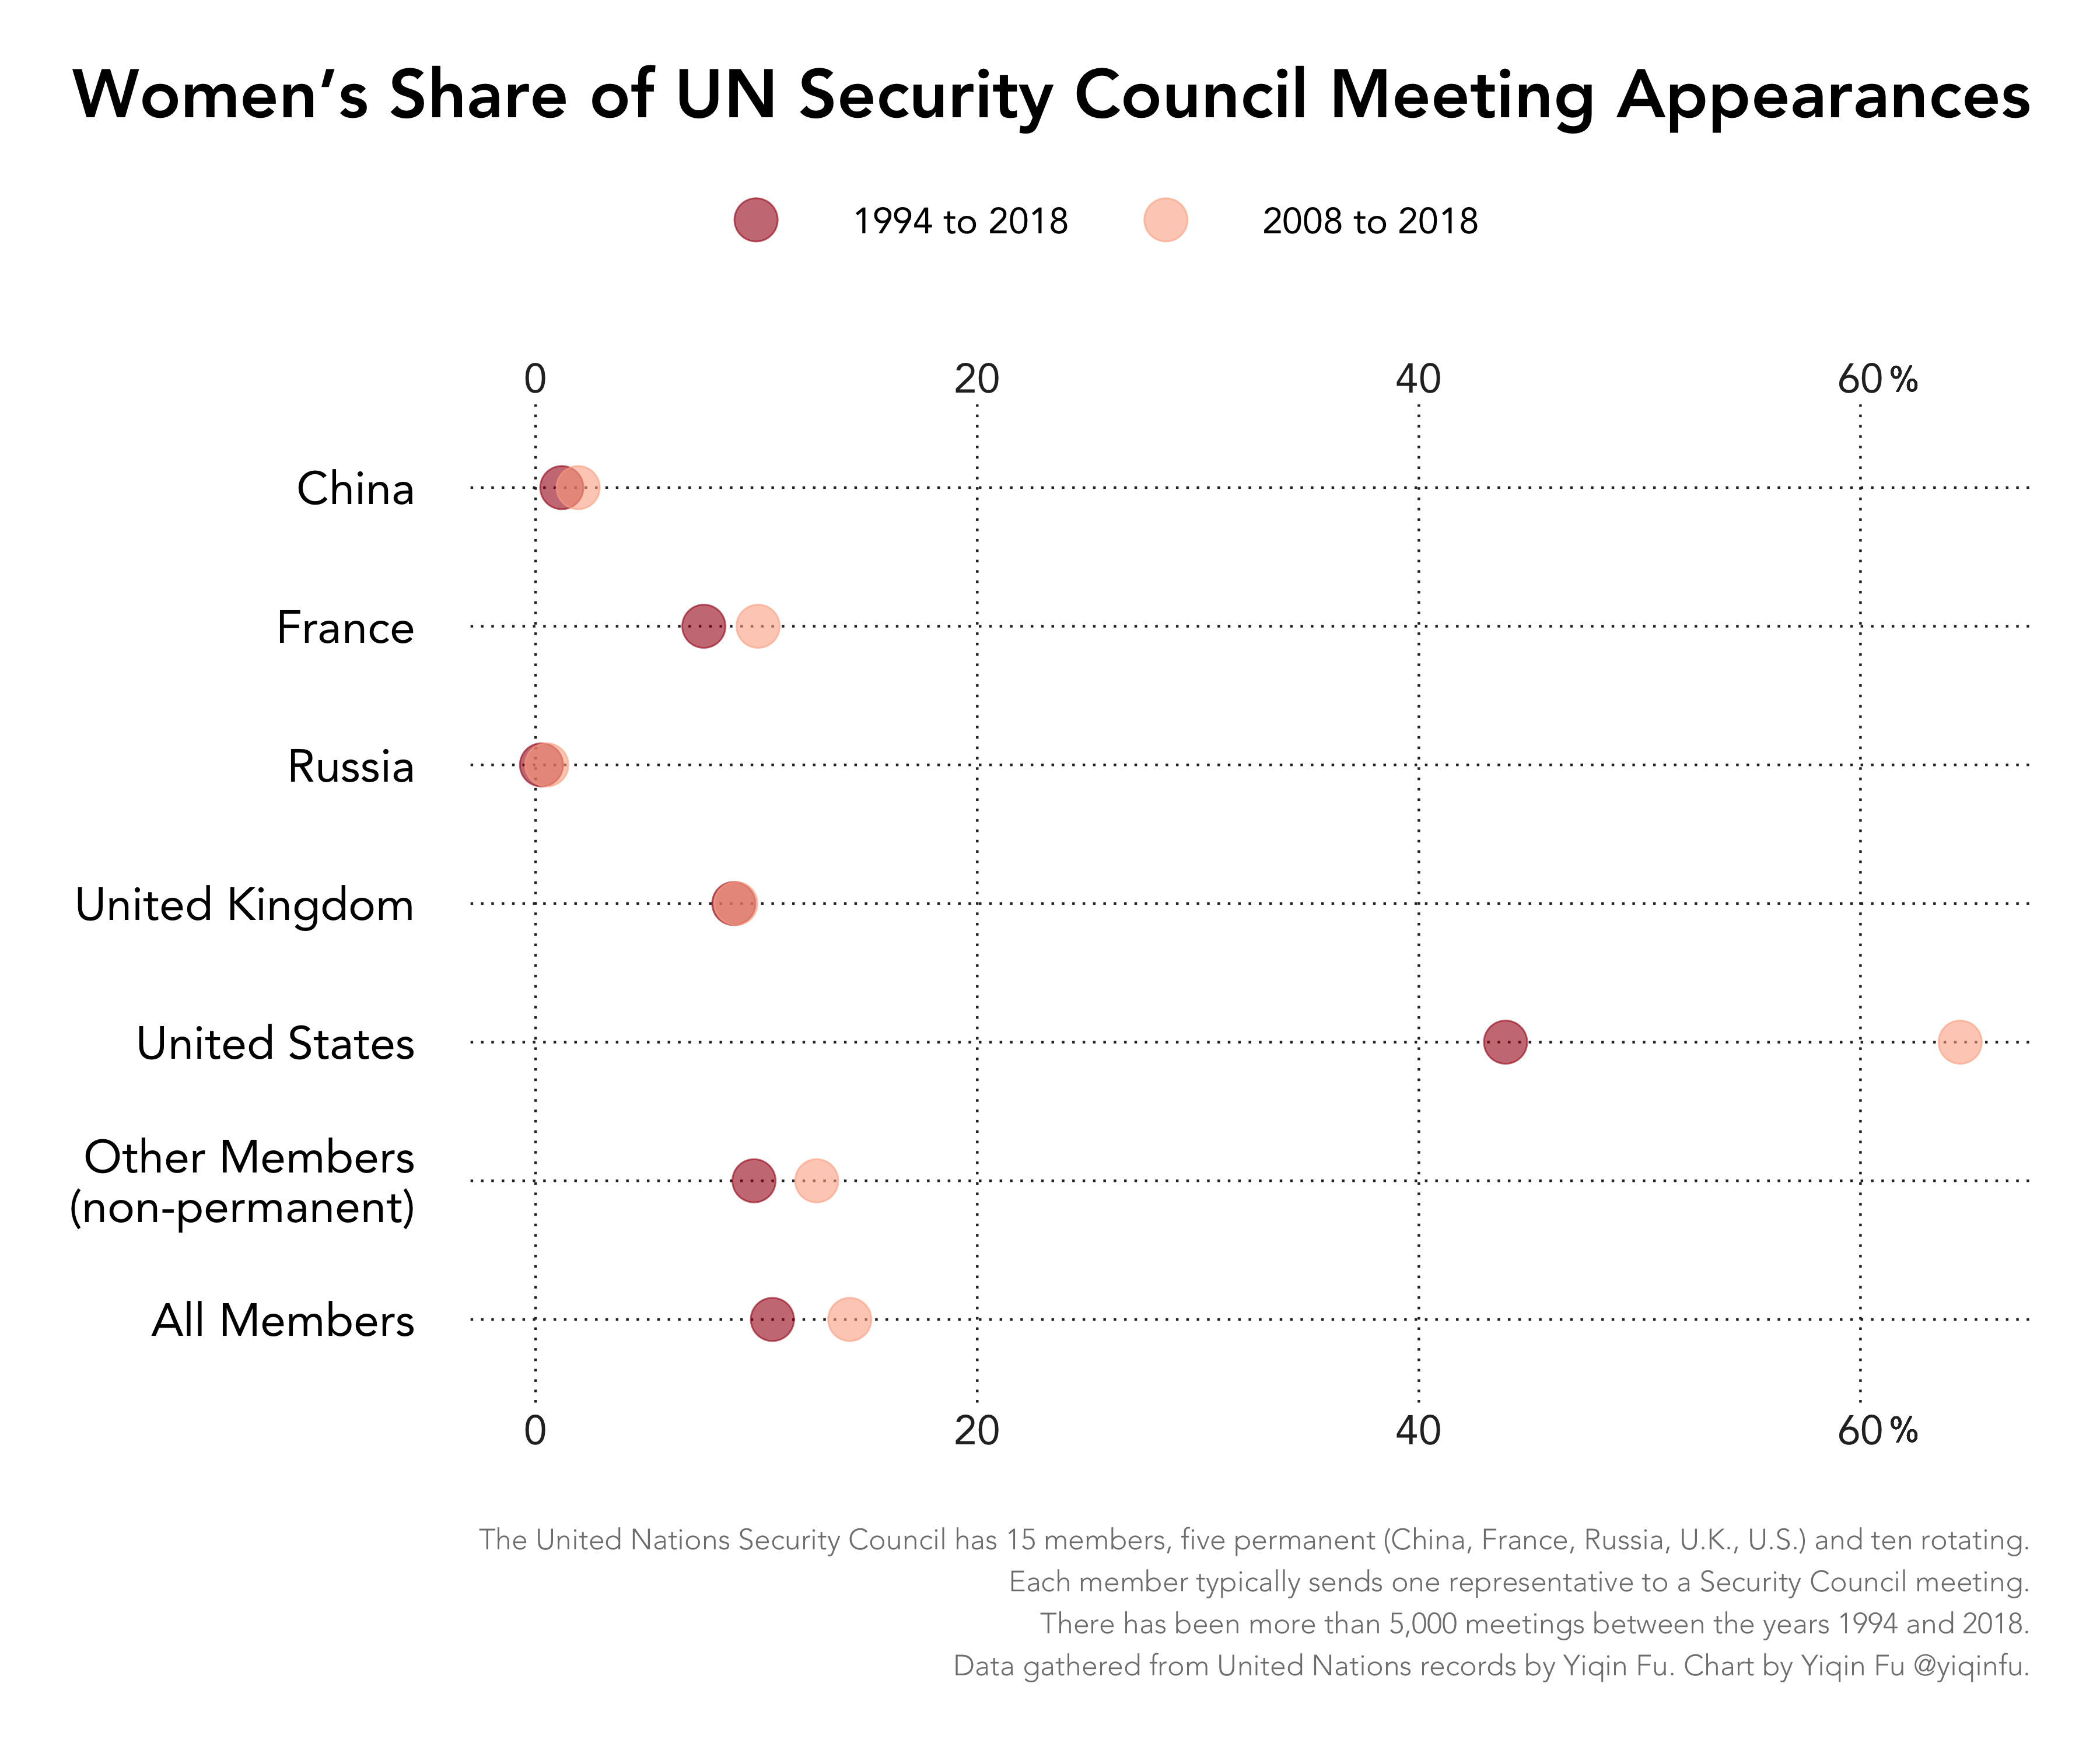 women-unsc-appearance